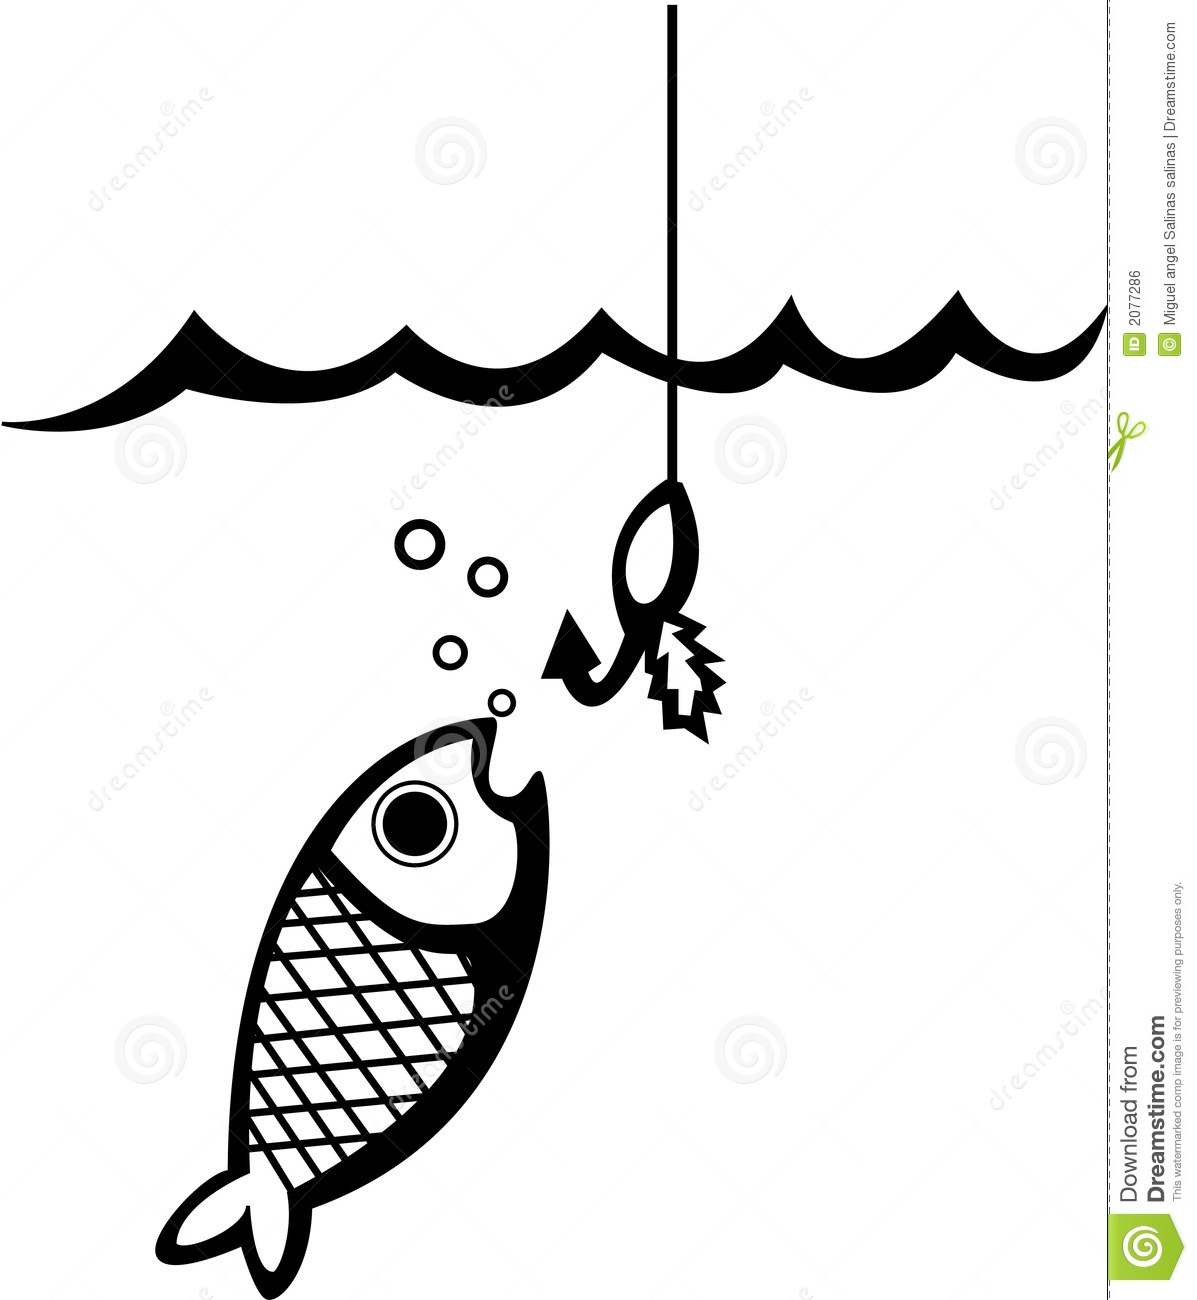 Fishing Scales Clipart